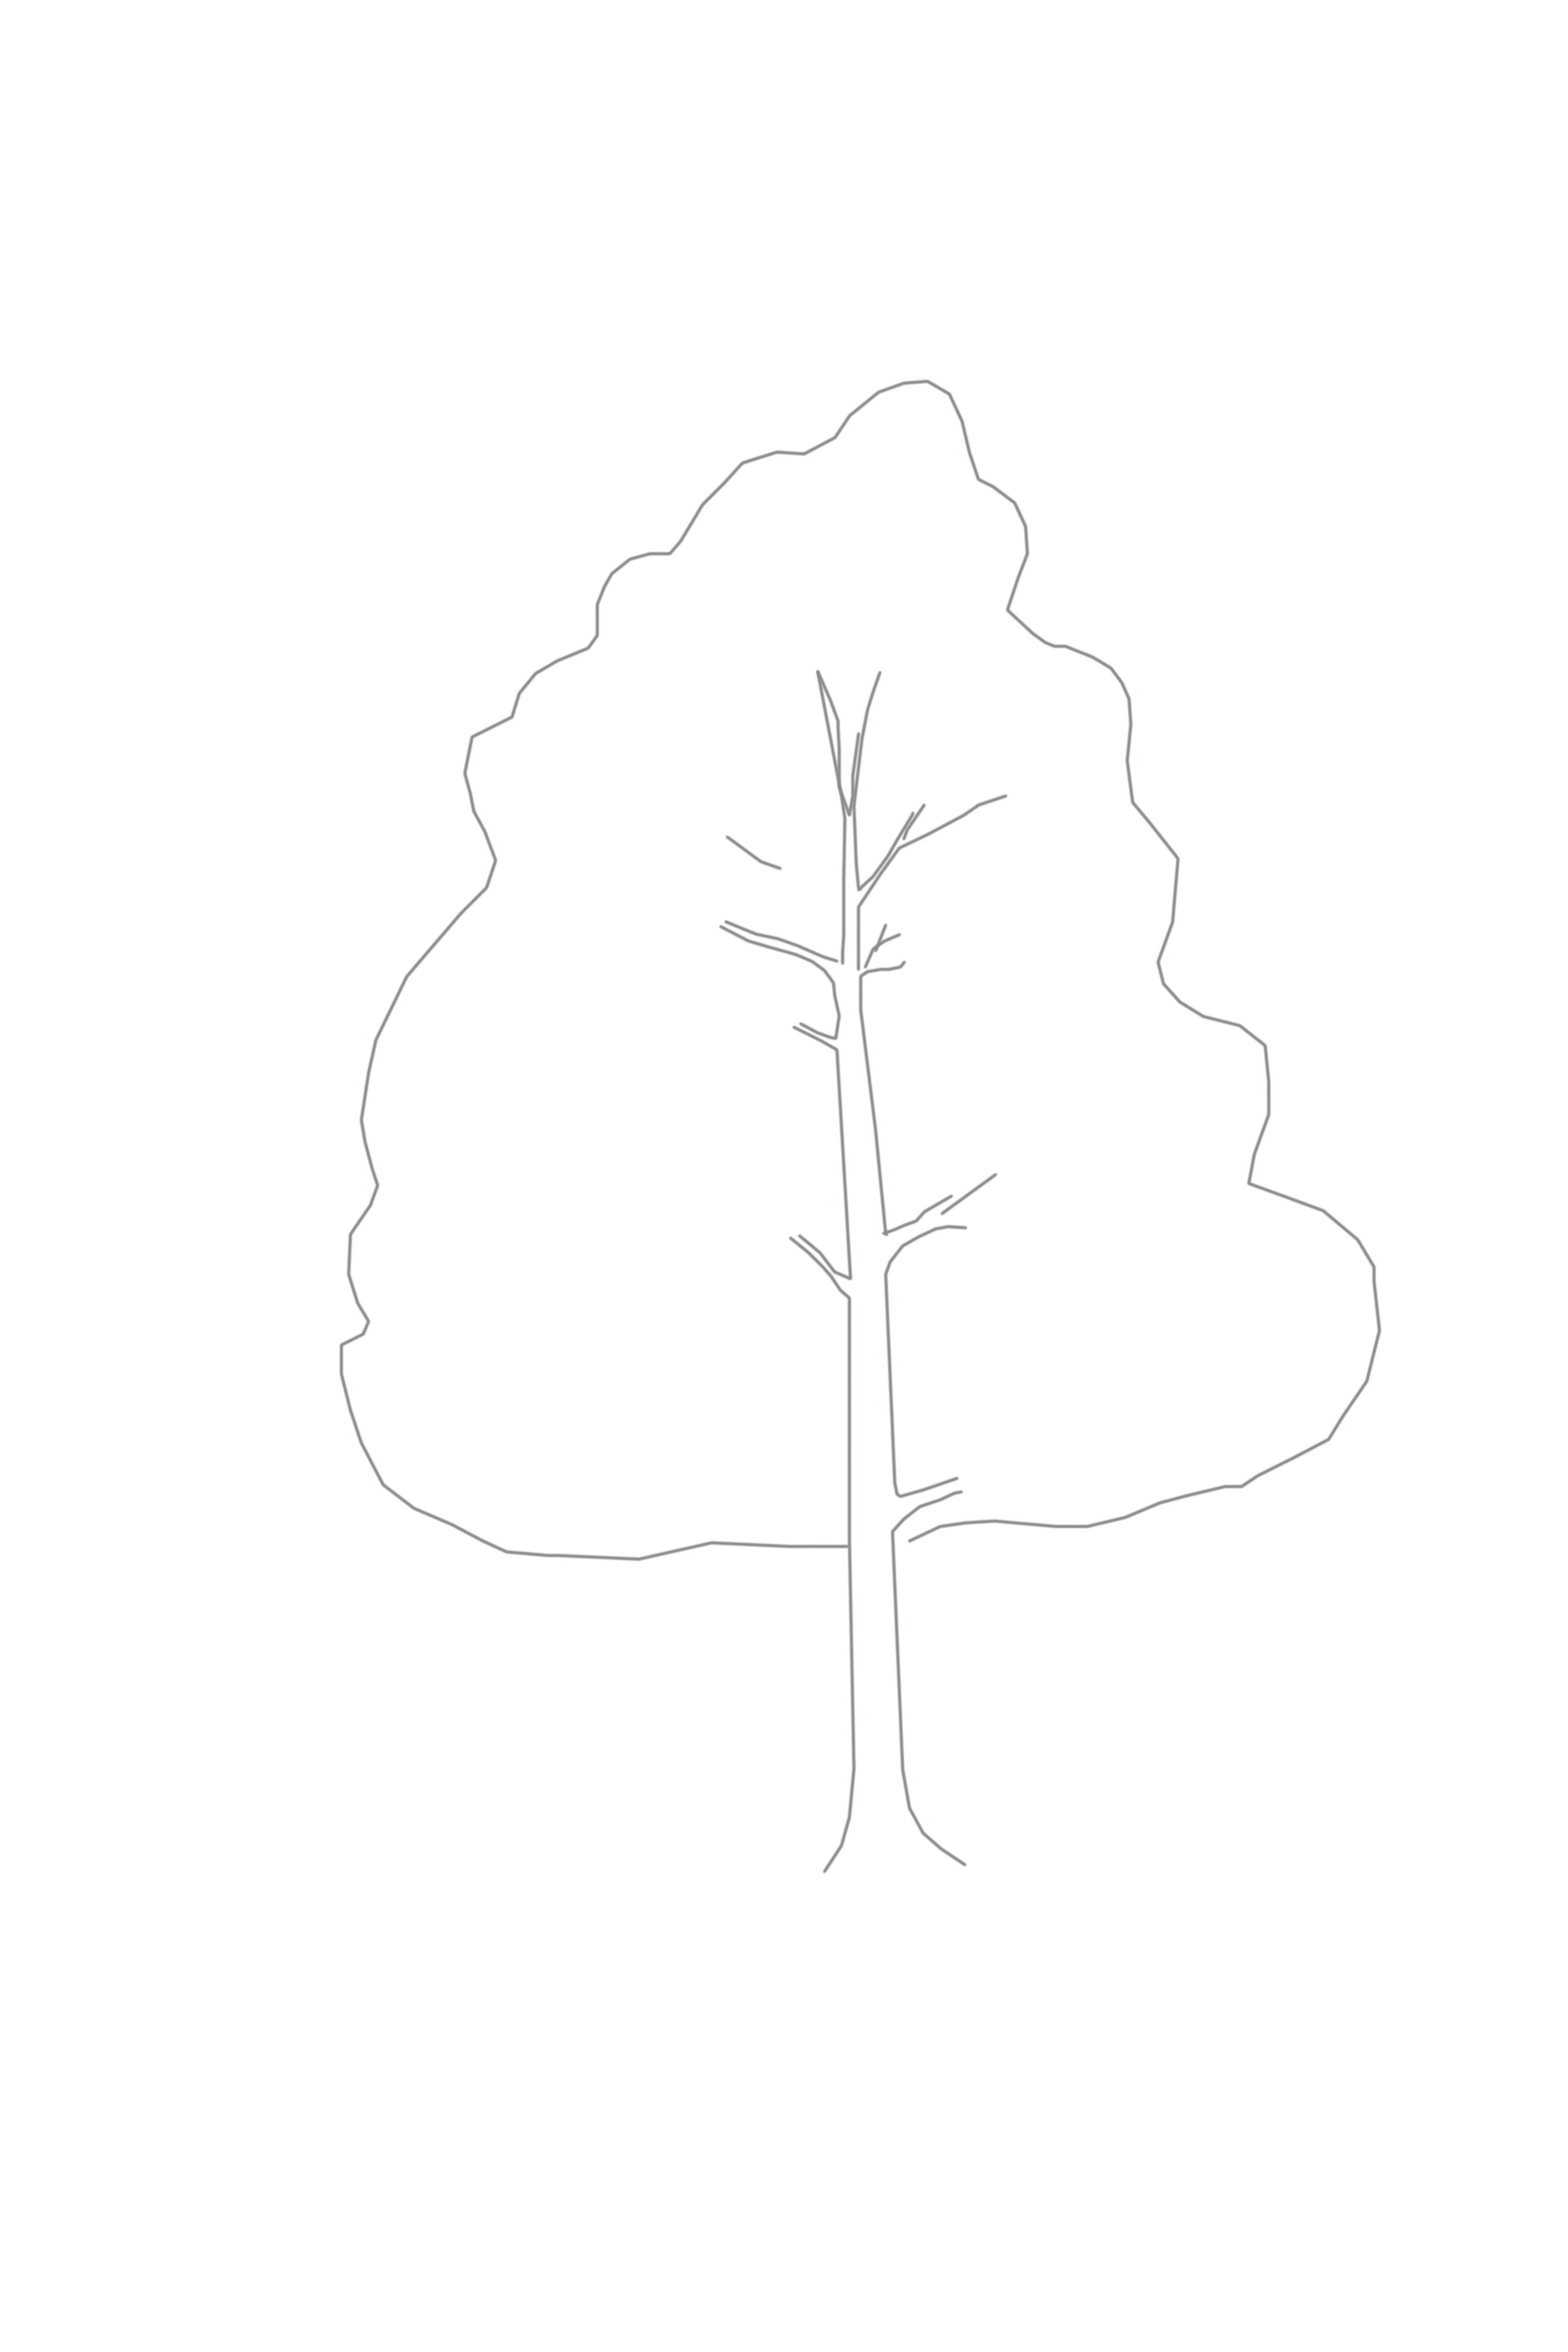 Outline of Tree leaves